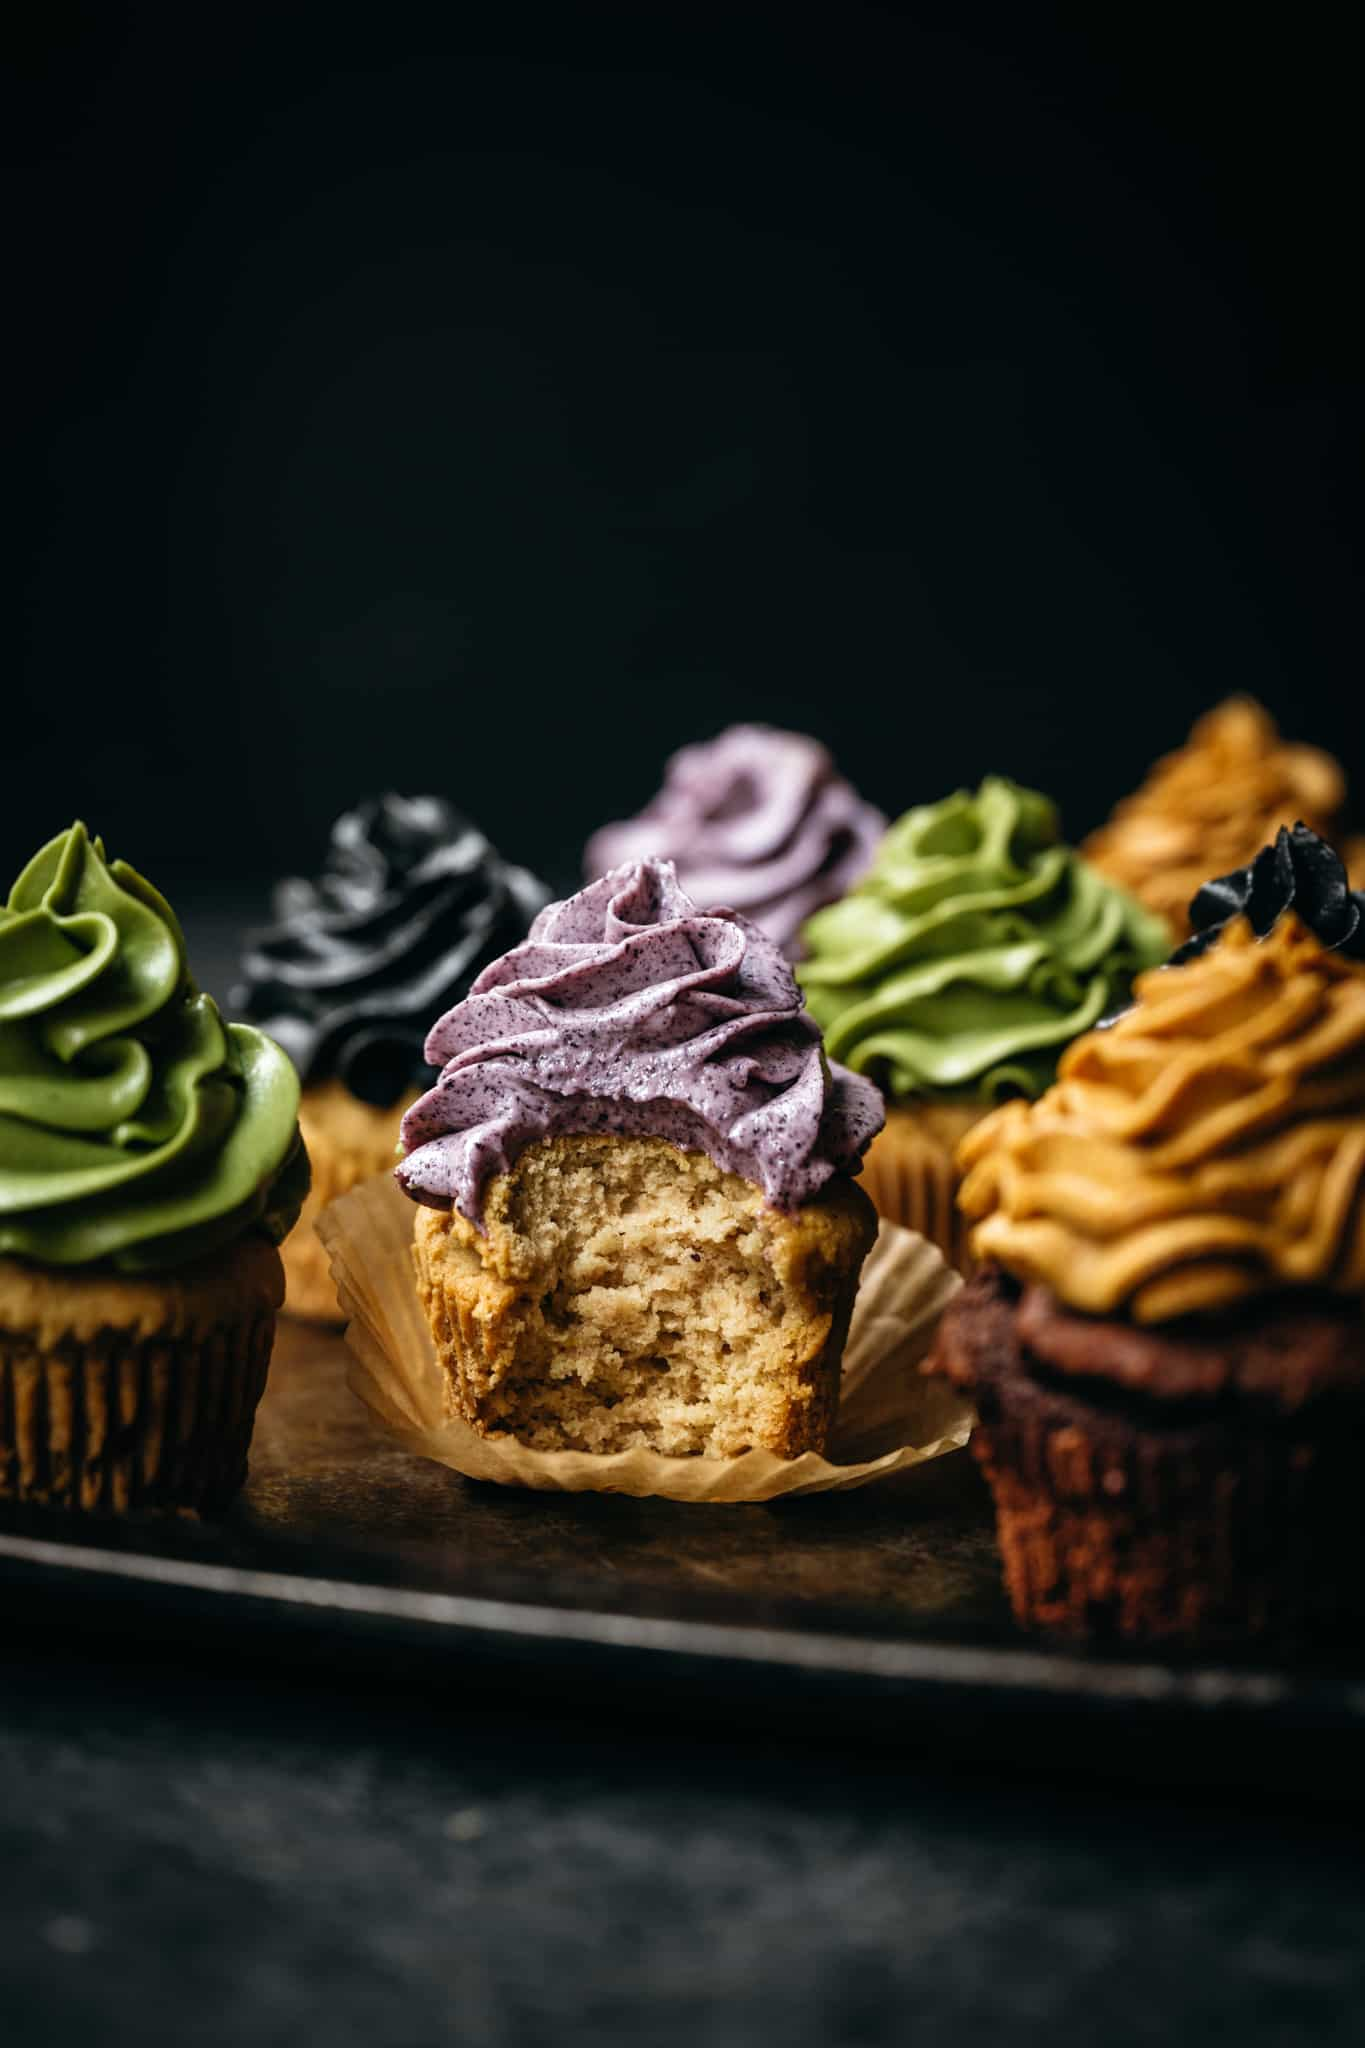 close up of vegan cupcakes topped with buttercream dyed with natural vegan food colorings with a bite taken out